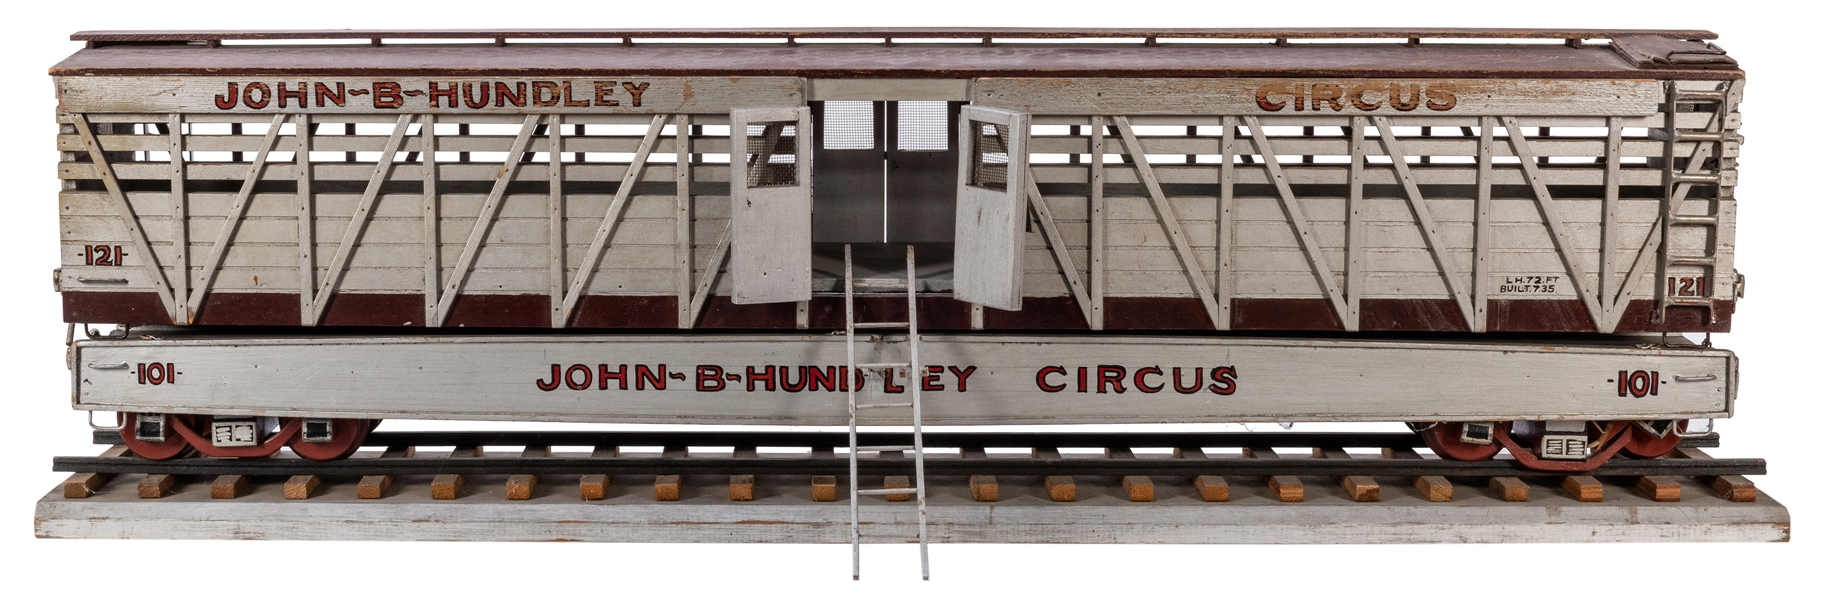 John B. Hundley Circus Animal Model Train Car.